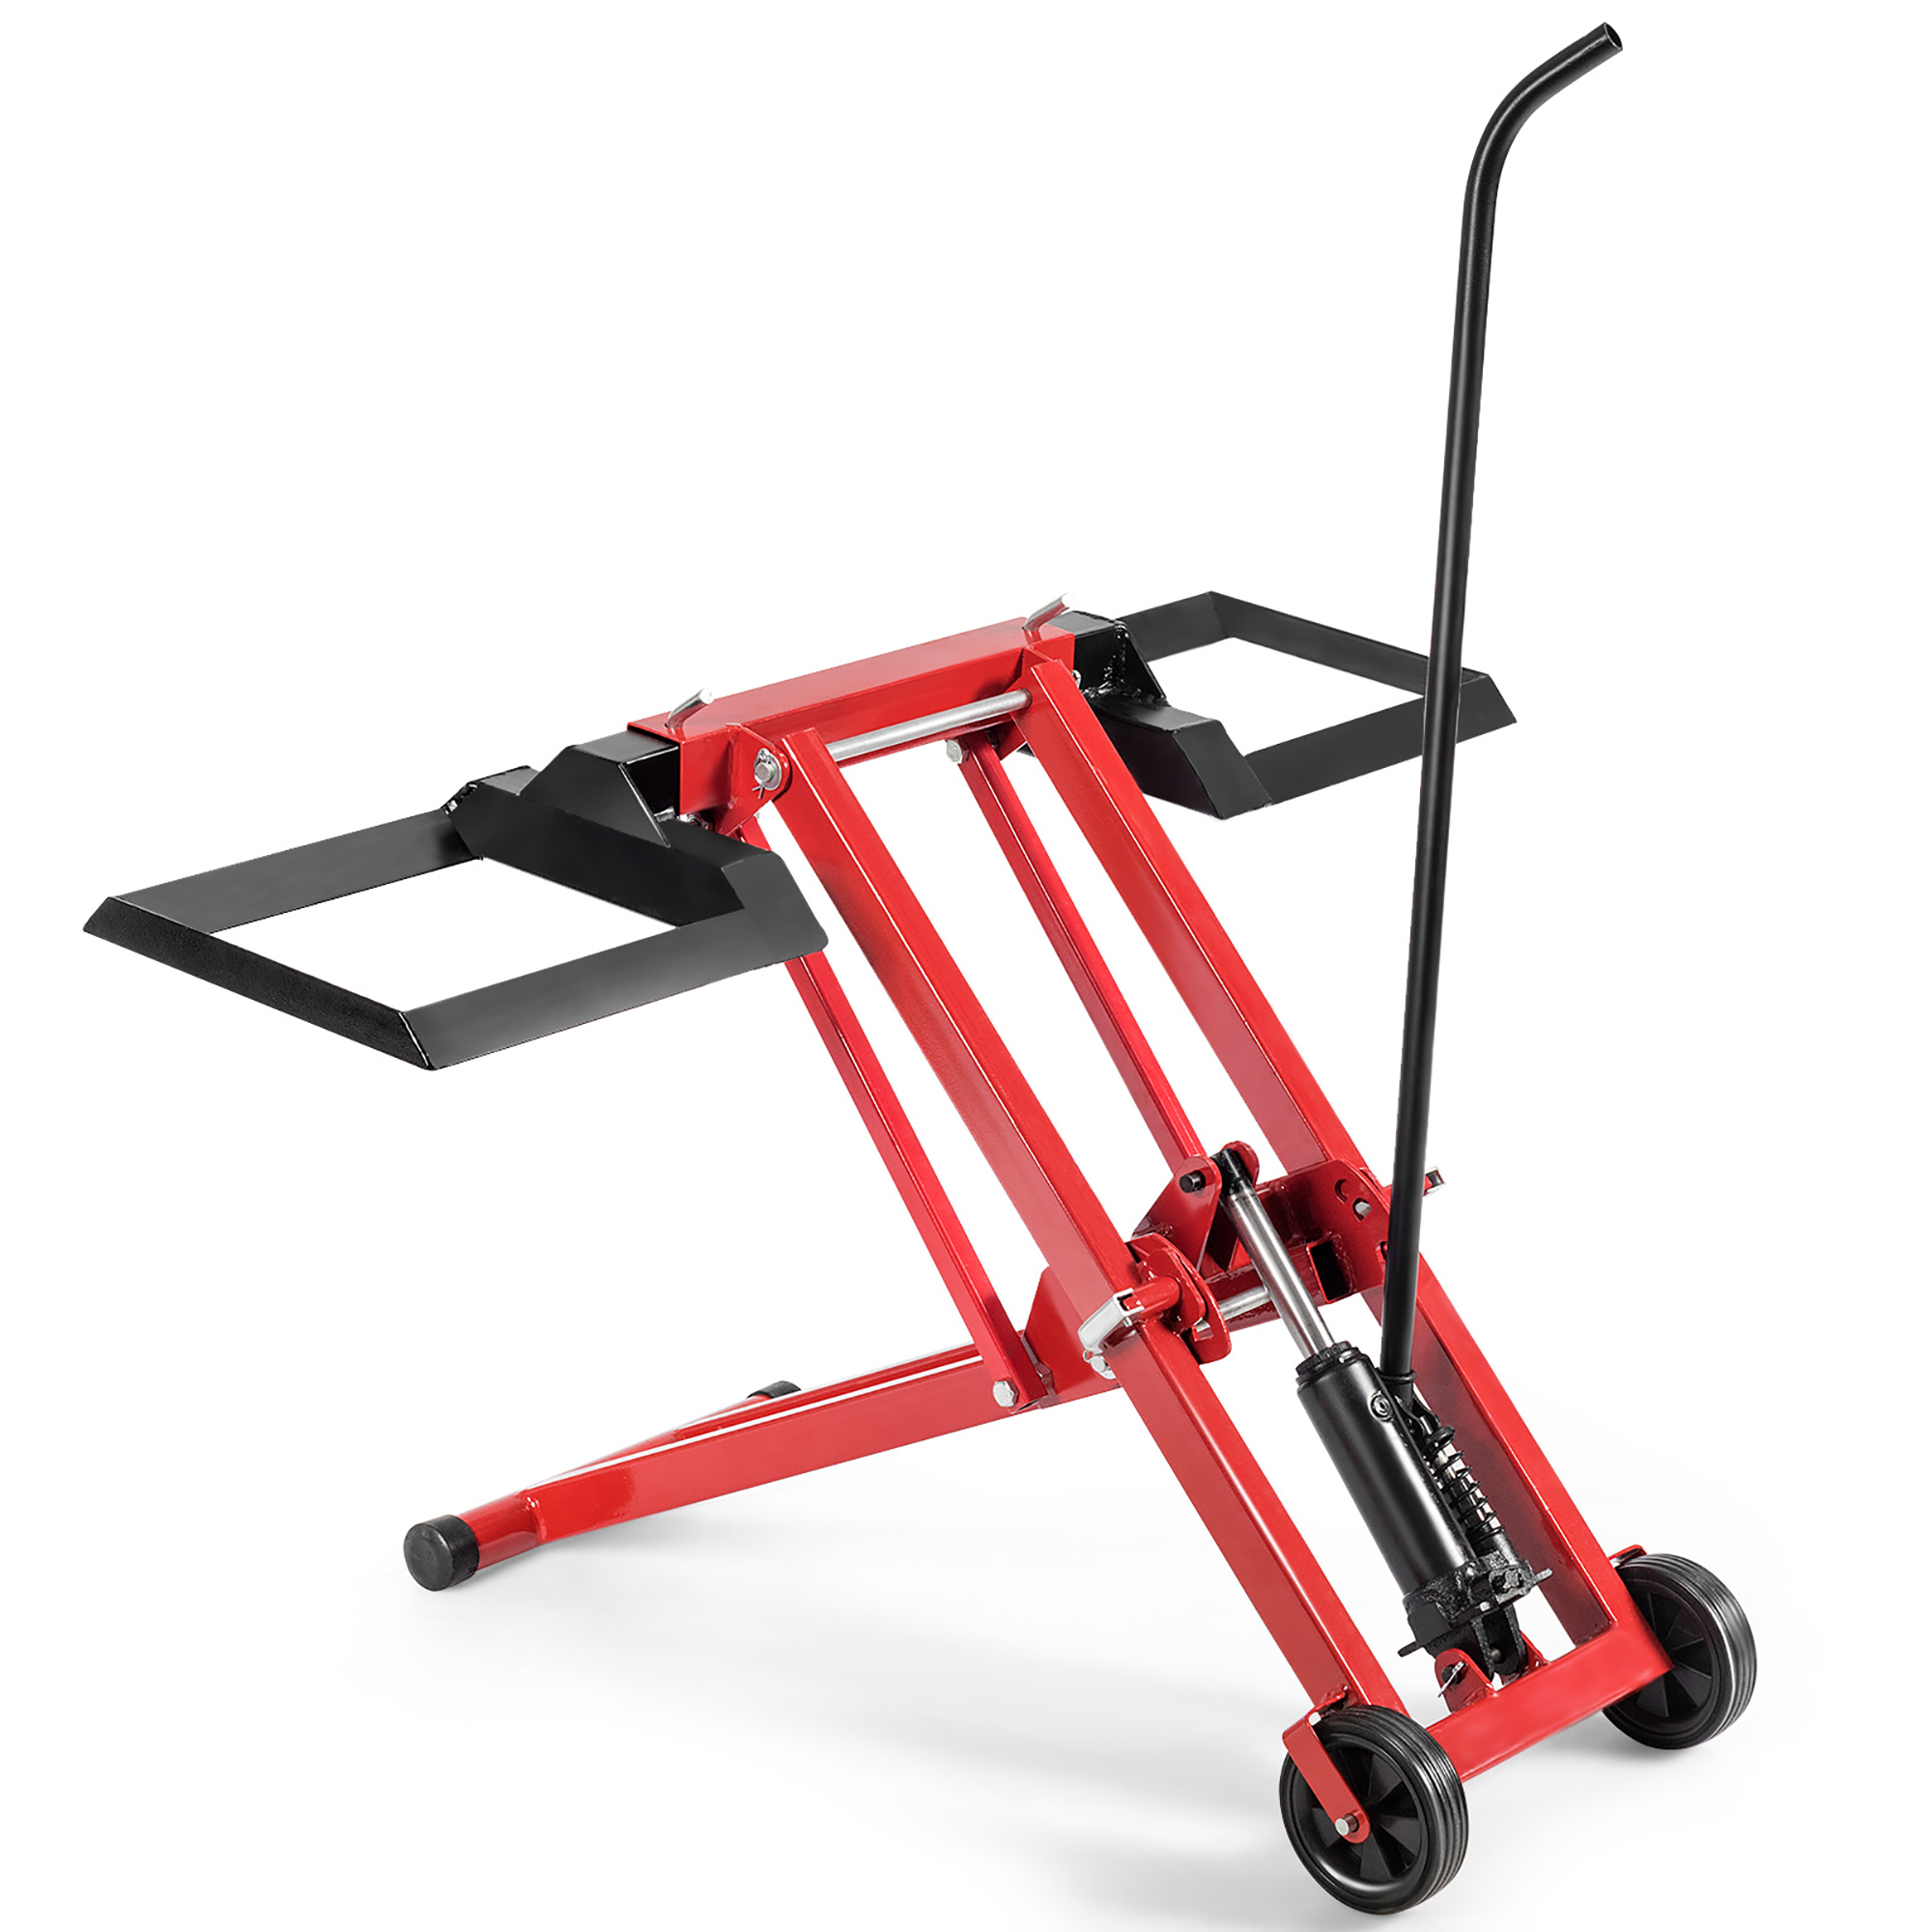 Lawn Mower Lift Jack for Tractors /& Zero Turn Riding Mowers Foldable on Wheels